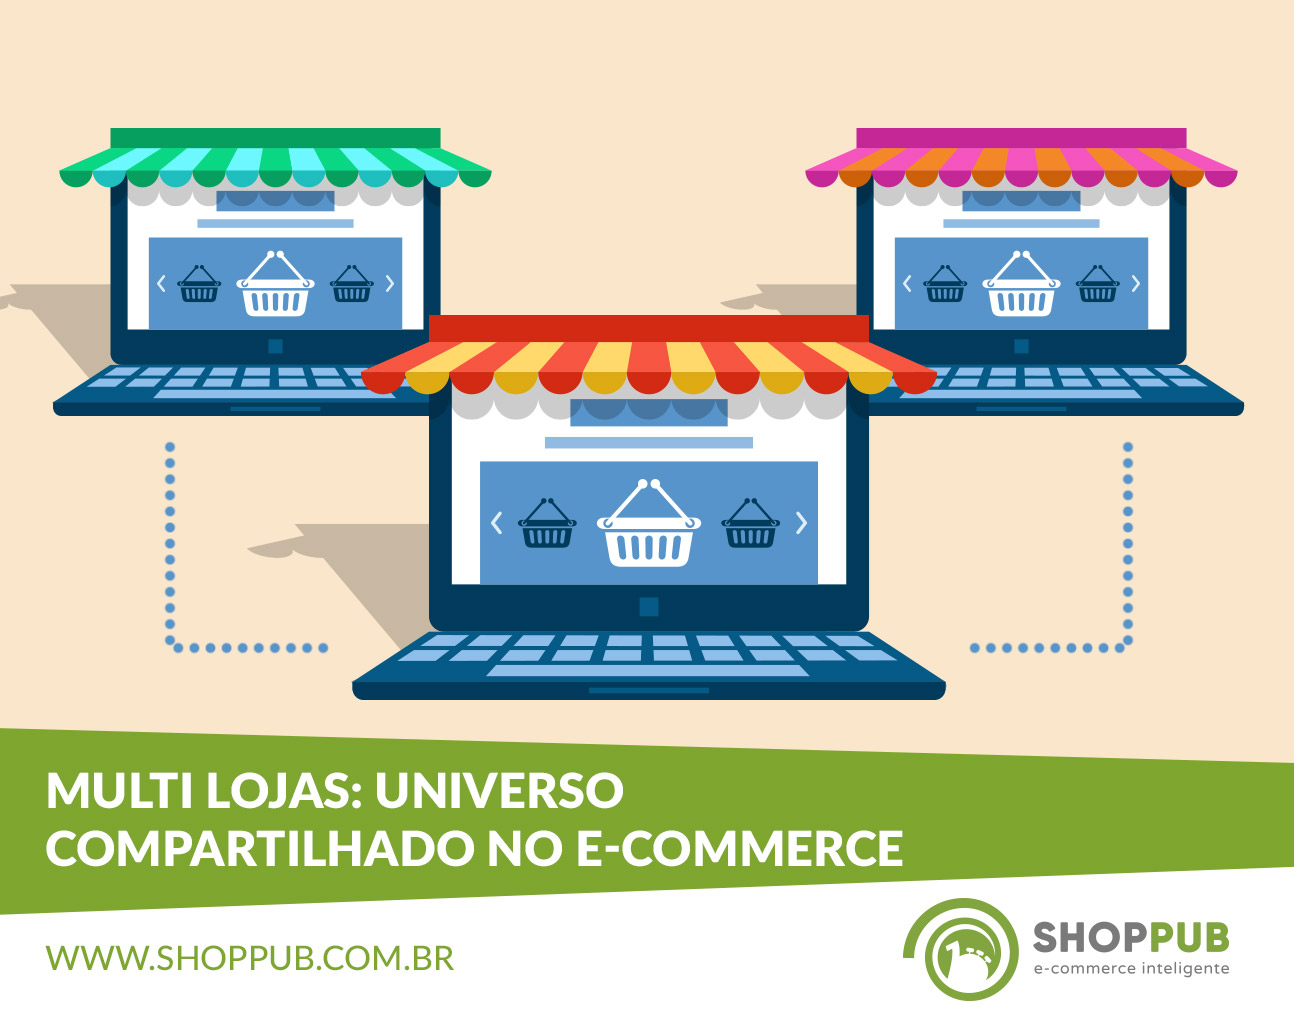 Multi loja: universo compartilhado no e-commerce